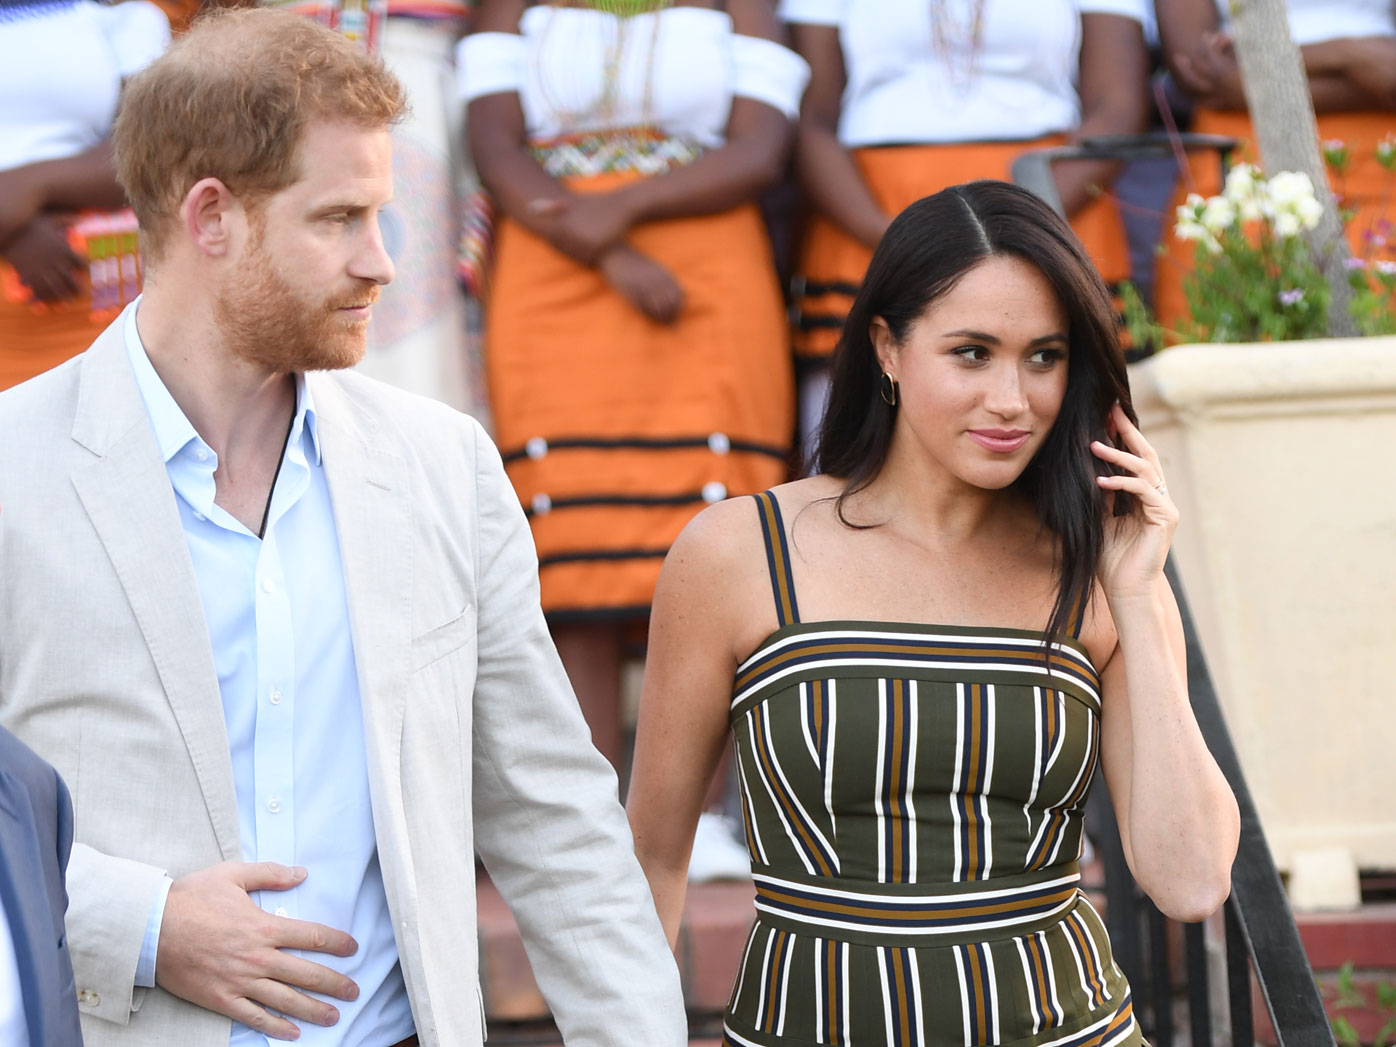 Palace insiders fuelling 'anti-Prince Harry and Meghan Markle hysteria', source claims